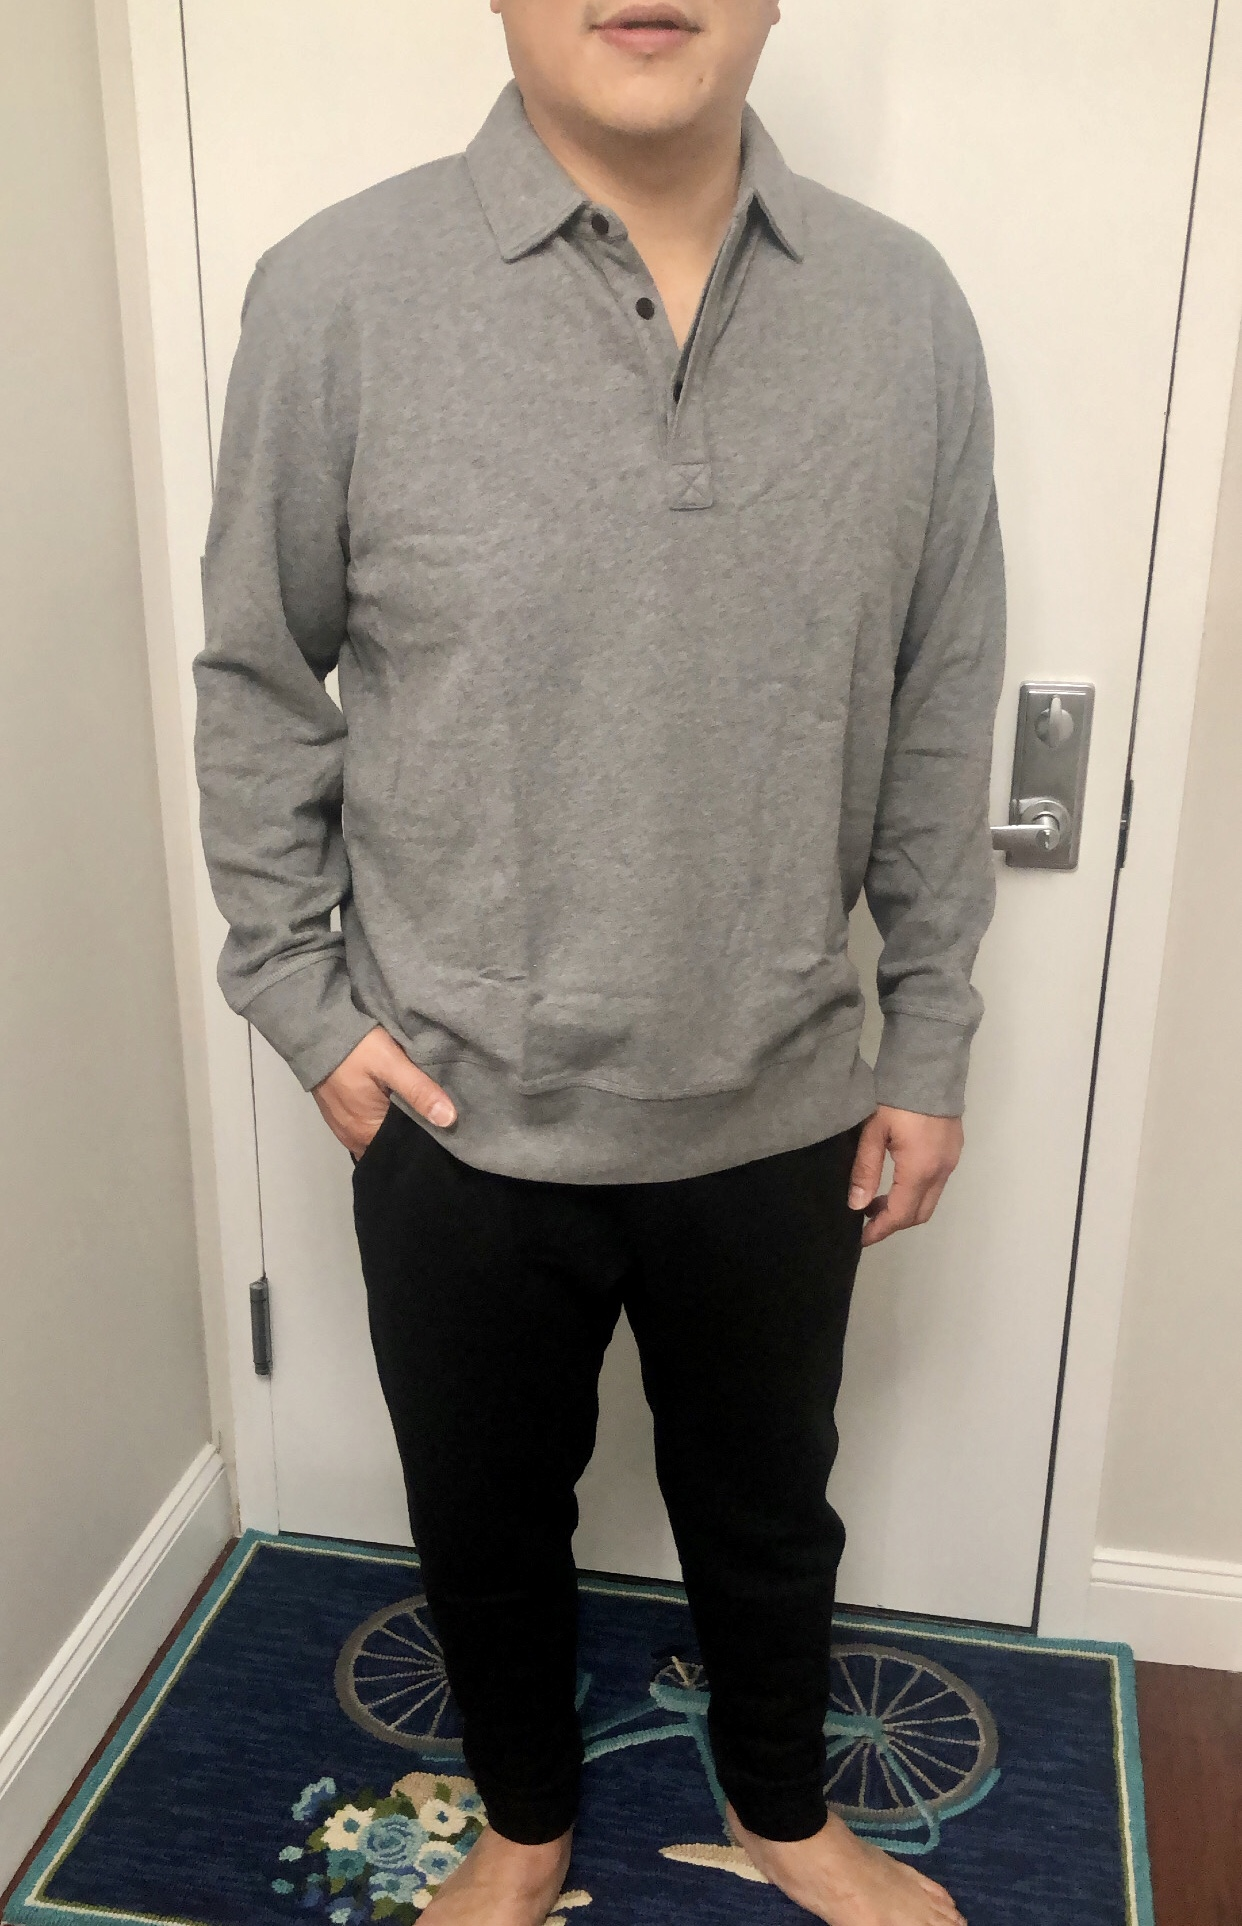 Banana Republic Core Temp Rugby Sweatshirt, size XL